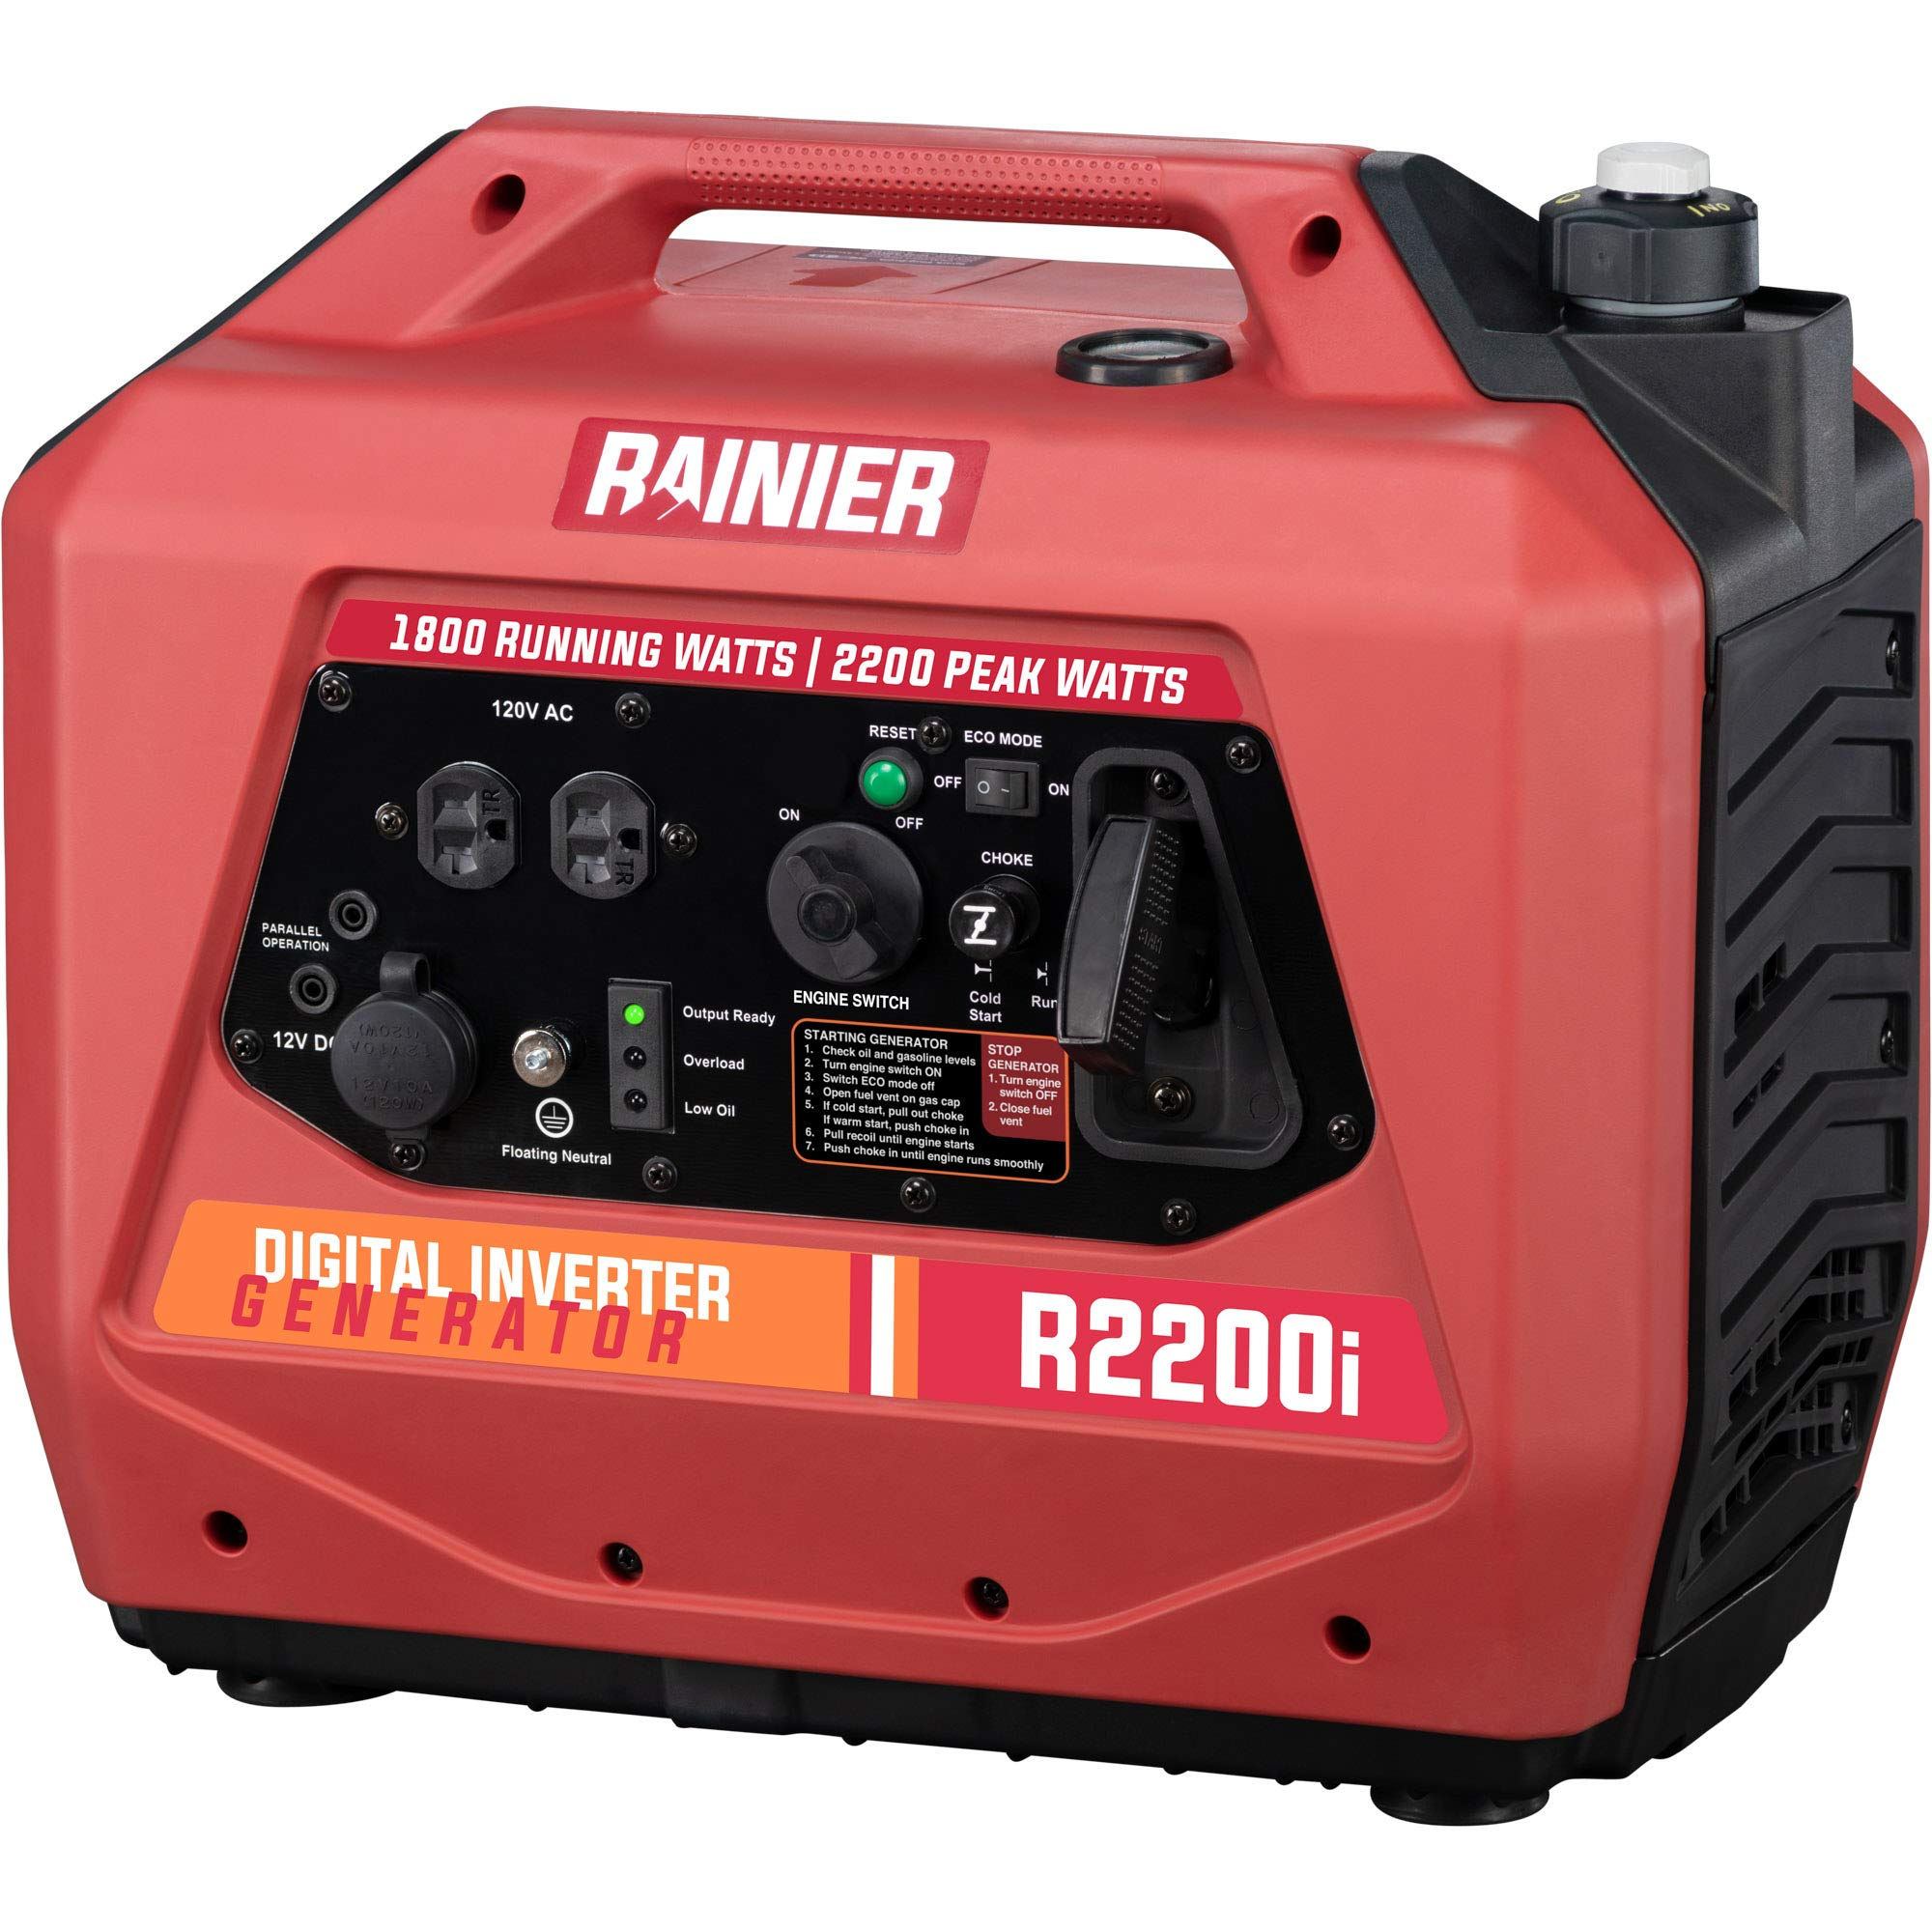 Rainier Outdoor Power Equipment R2200i Super Quiet Portable Inverter Generator 1800 Running & 2200